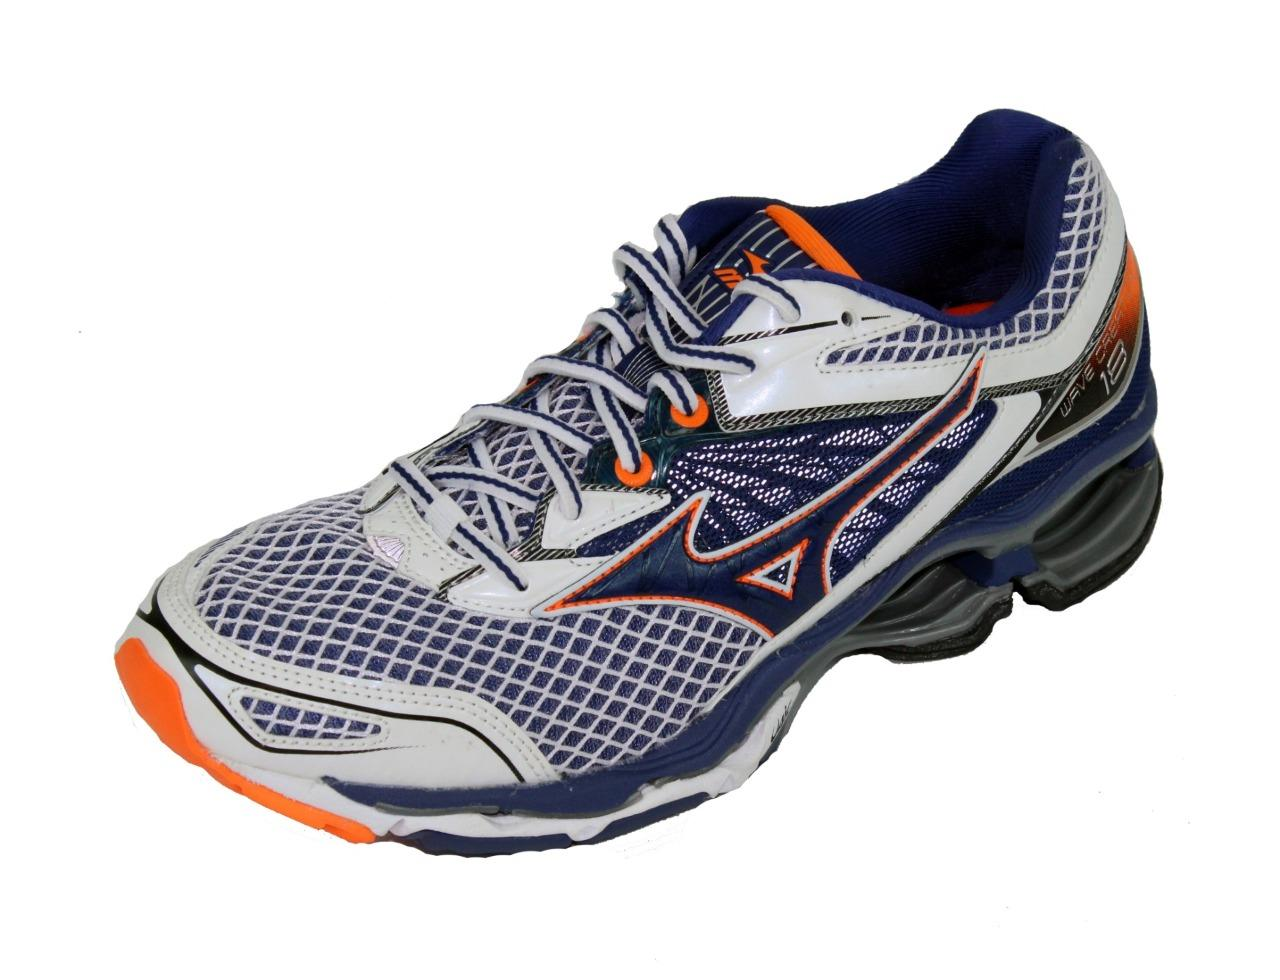 New Men s Mizuno Wave Creation 18 Running Shoes Size 9 White Blue ... 819221a25f543